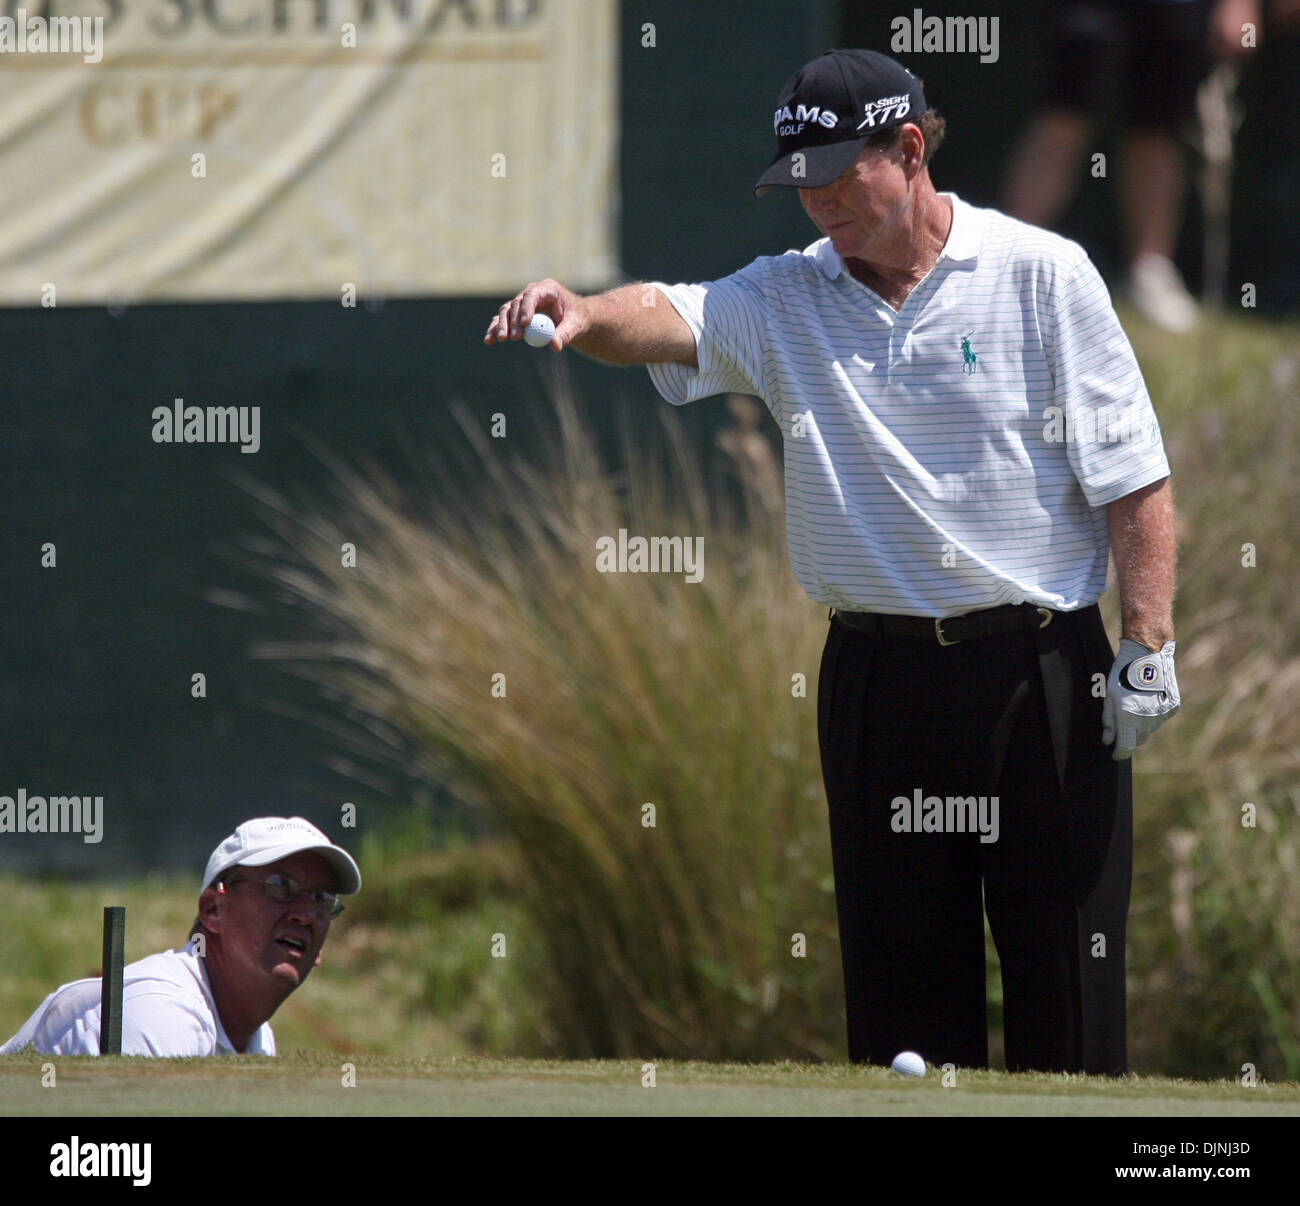 Apr 20, 2008 - Lutz, Florida, USA - TOM WATSON does the second drop ball on the 18th hole of the Outback Steakhouse Pro-Am at the TPC of Tampa Bay. (Credit Image: - Stock Image